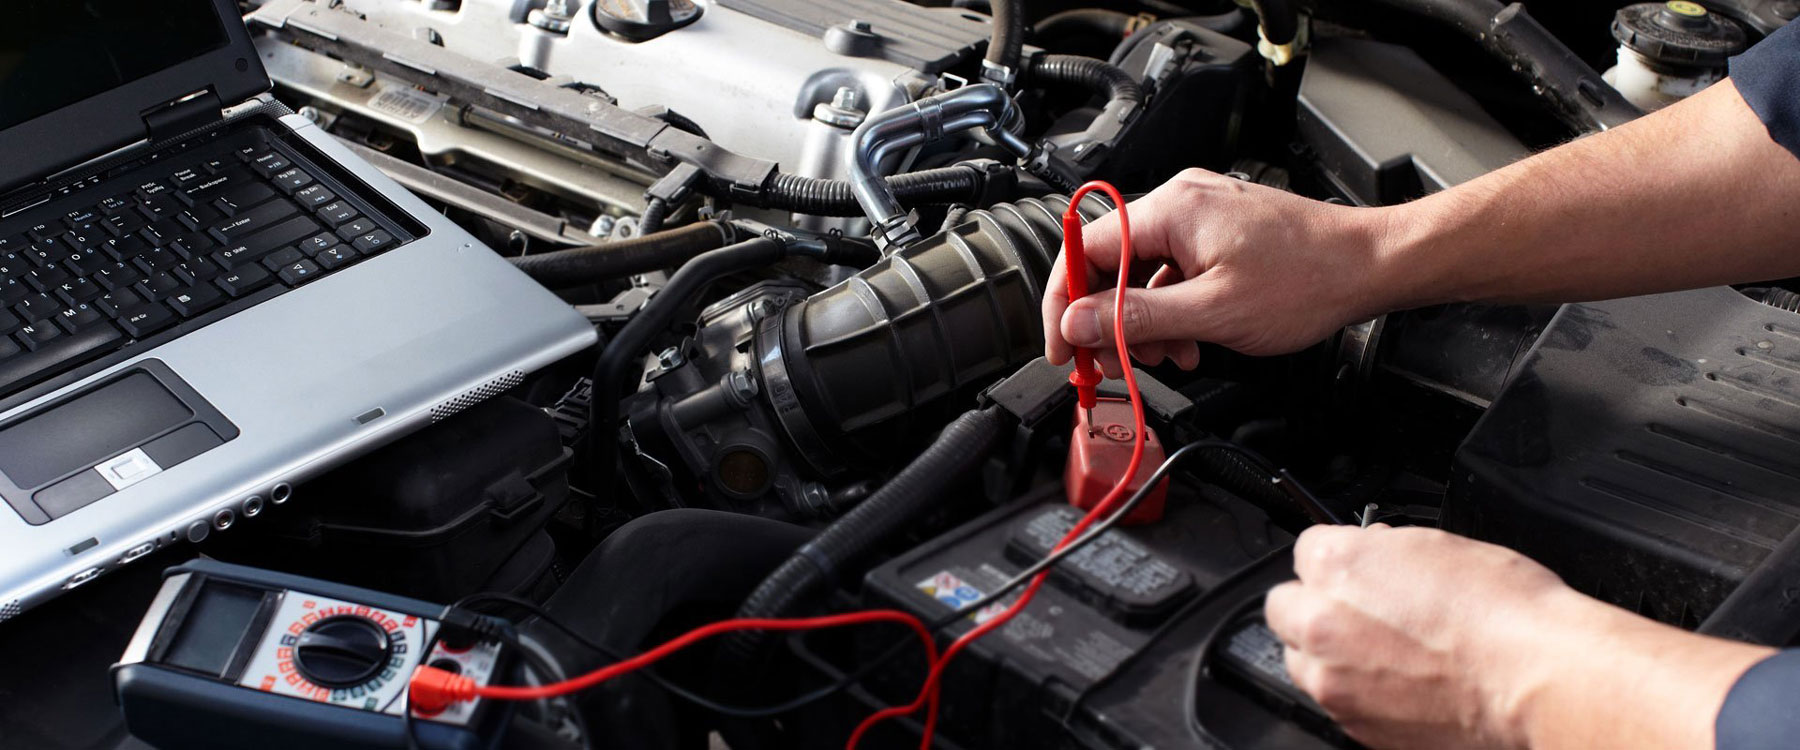 Auto Electrician working on car battery